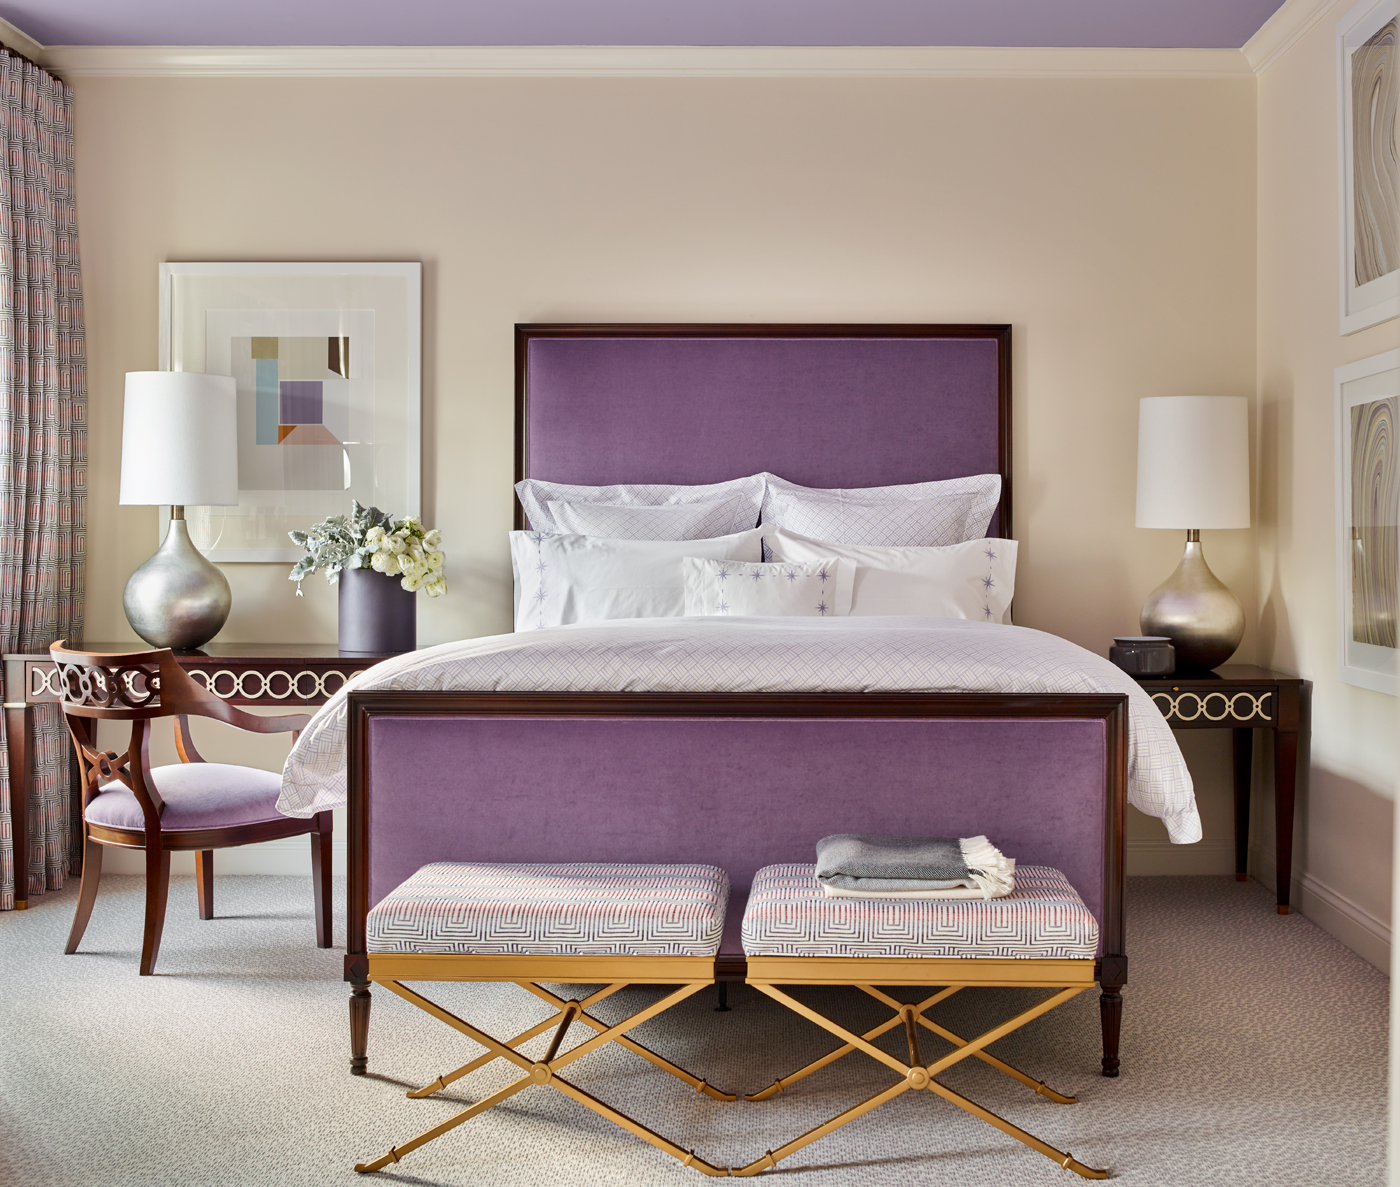 Bedroom with Hickory Chair bed upholstered in amethyst silk velvet from Romo and X-benches | Savage Interior Design